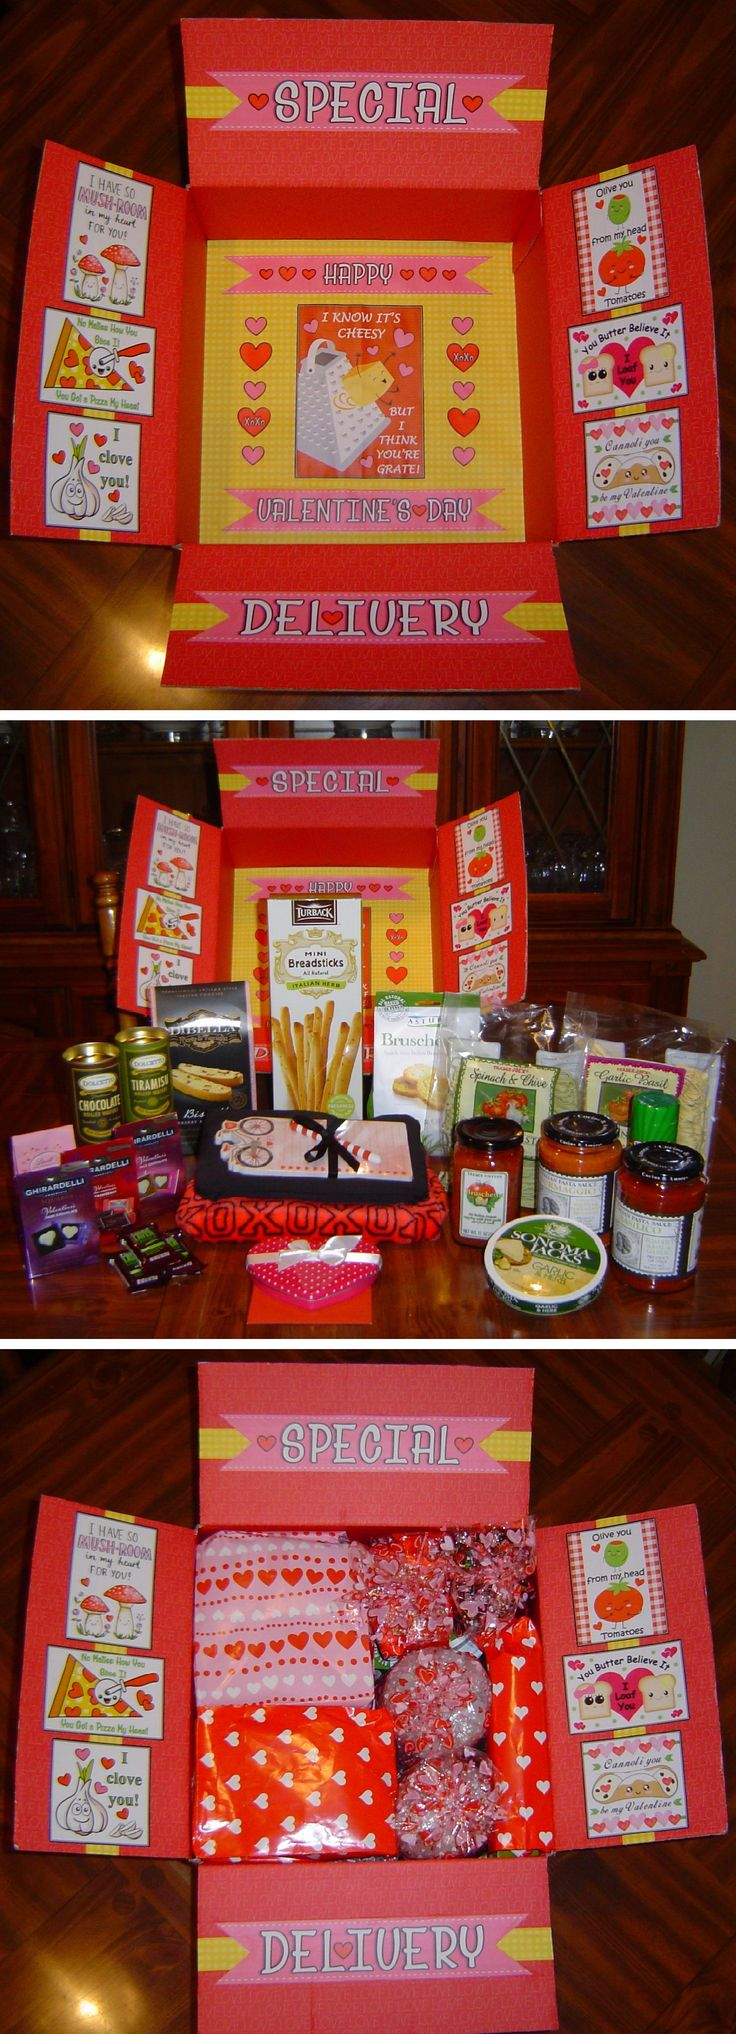 Special Delivery / Happy Valentine's Day care package. Sent to my daughter in college with an Italian theme. Included items to make an Italian dinner along with some snacks, sweets, pajamas and gift card. http://www.giftideascorner.com/valentines-gifts-special-man/